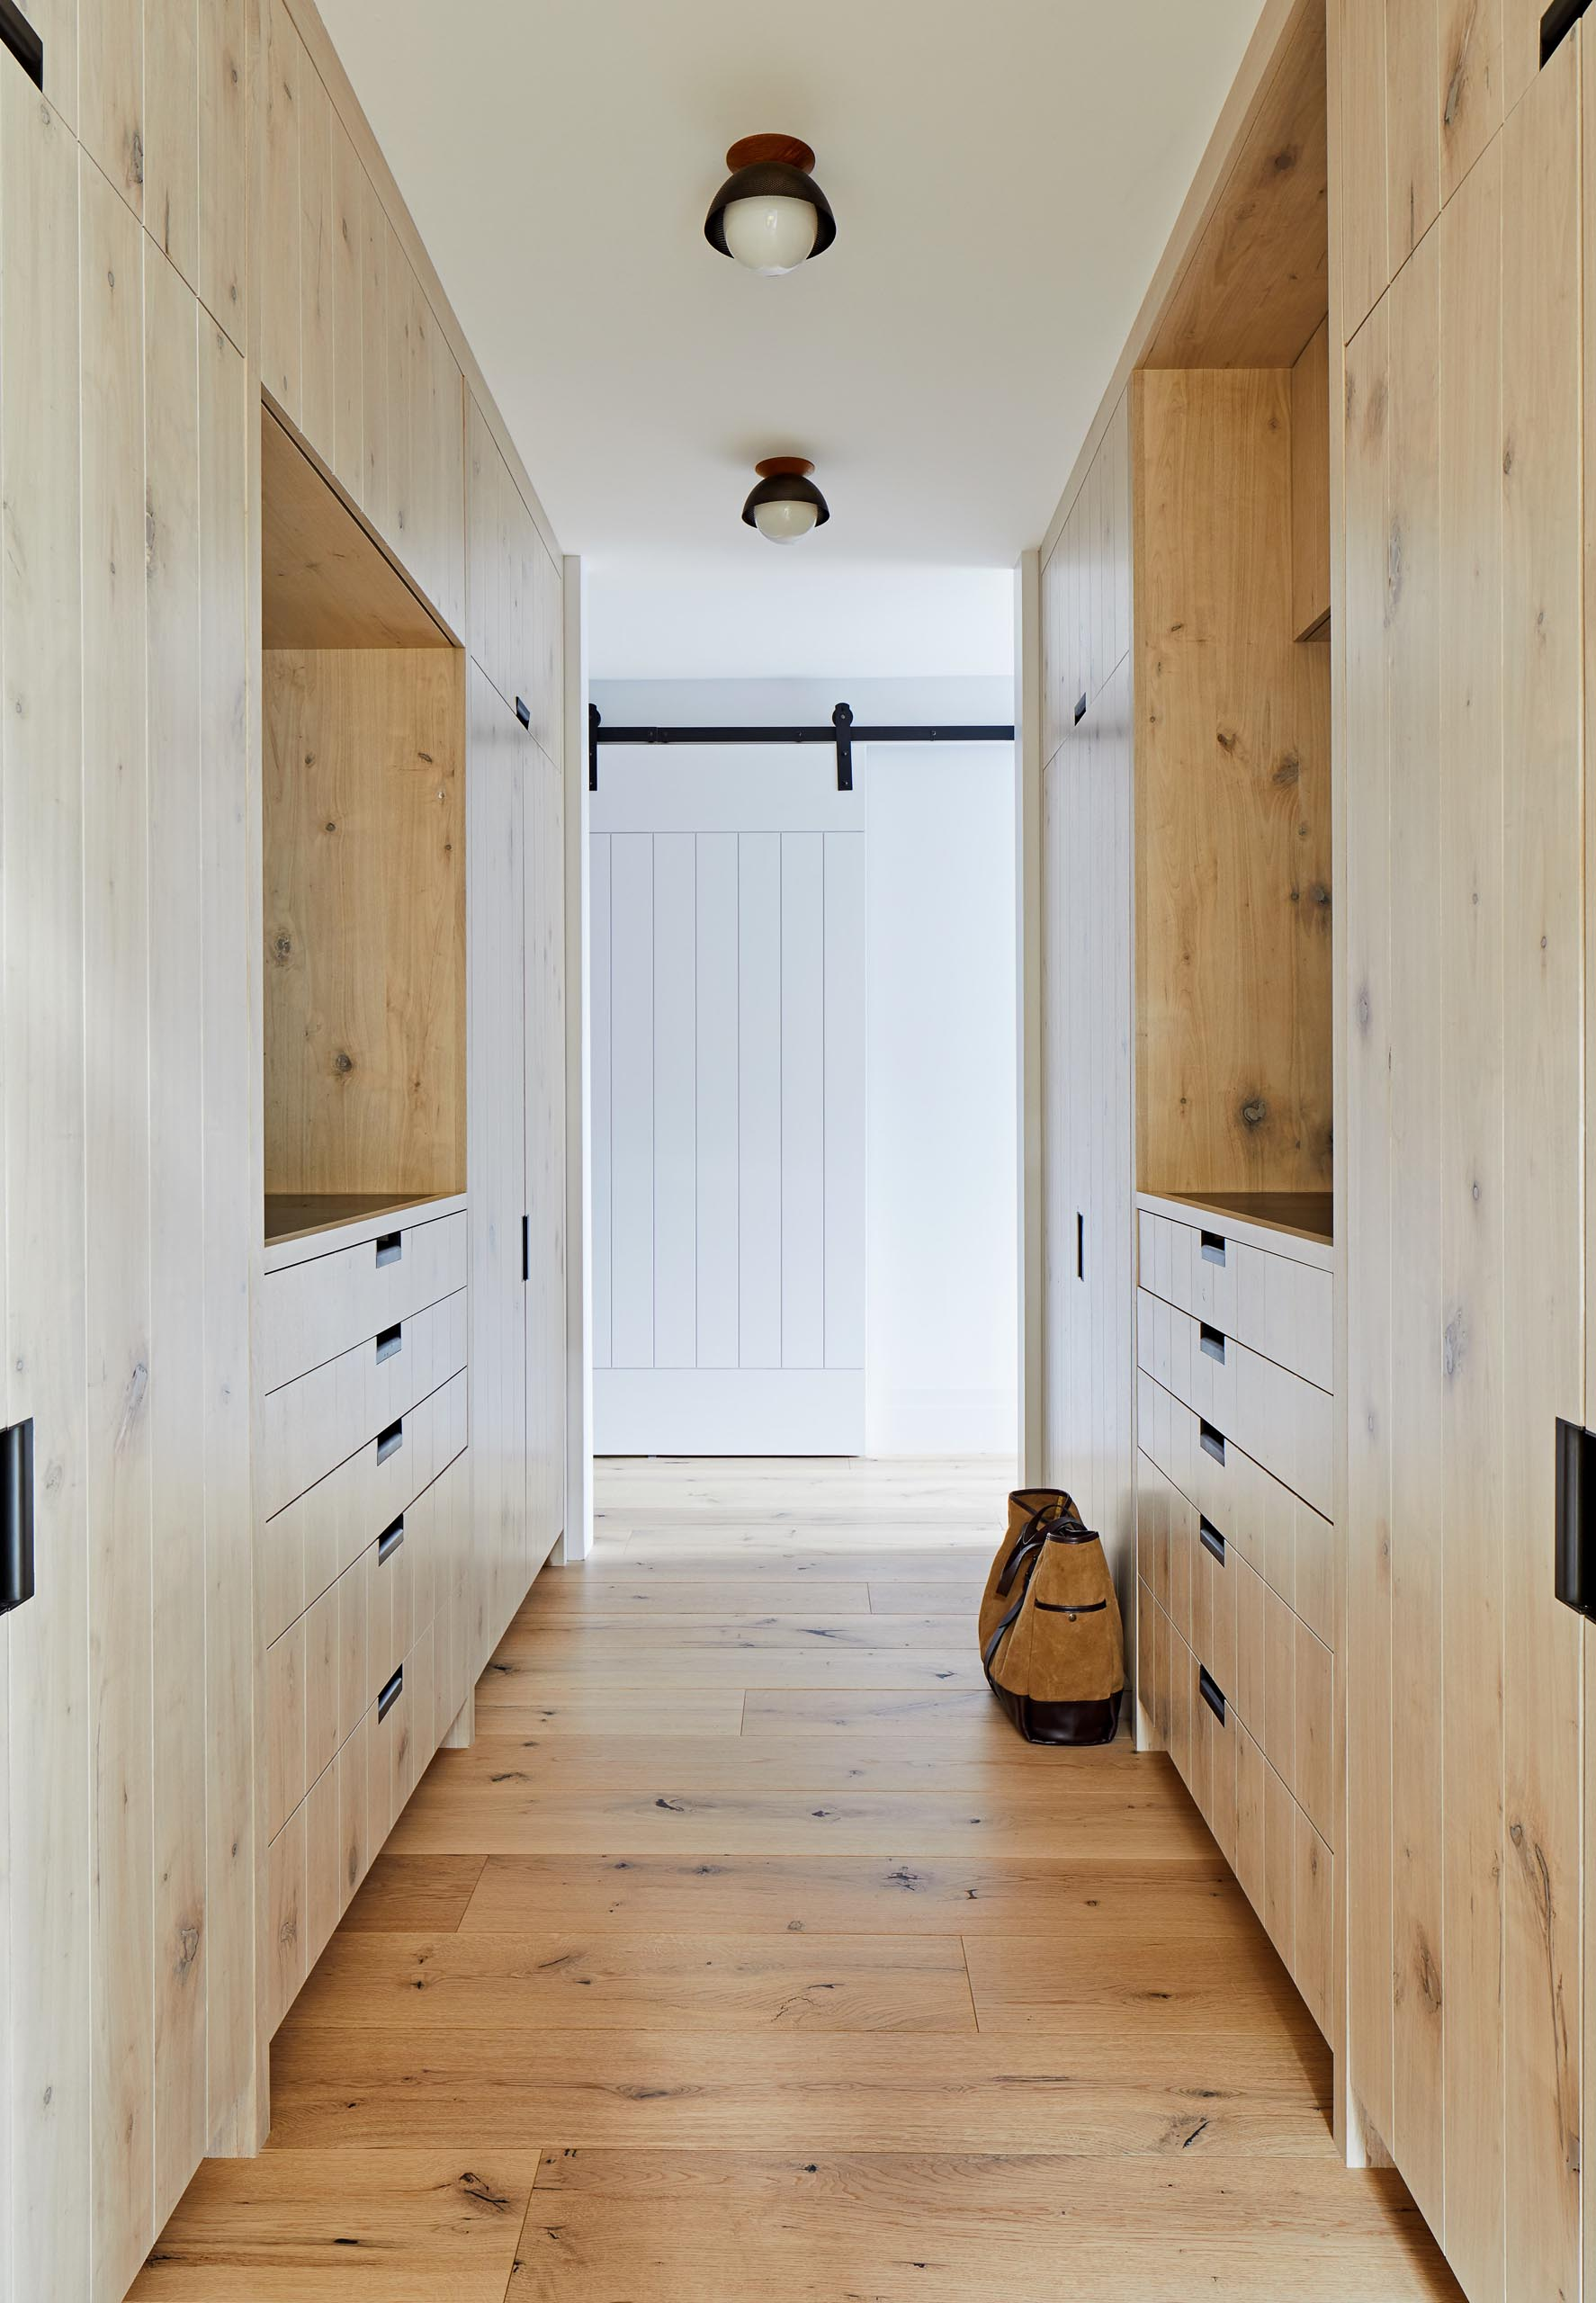 This master walk-in closet has plenty of space for storing clothes within the floor-to-ceiling wood cabinets.